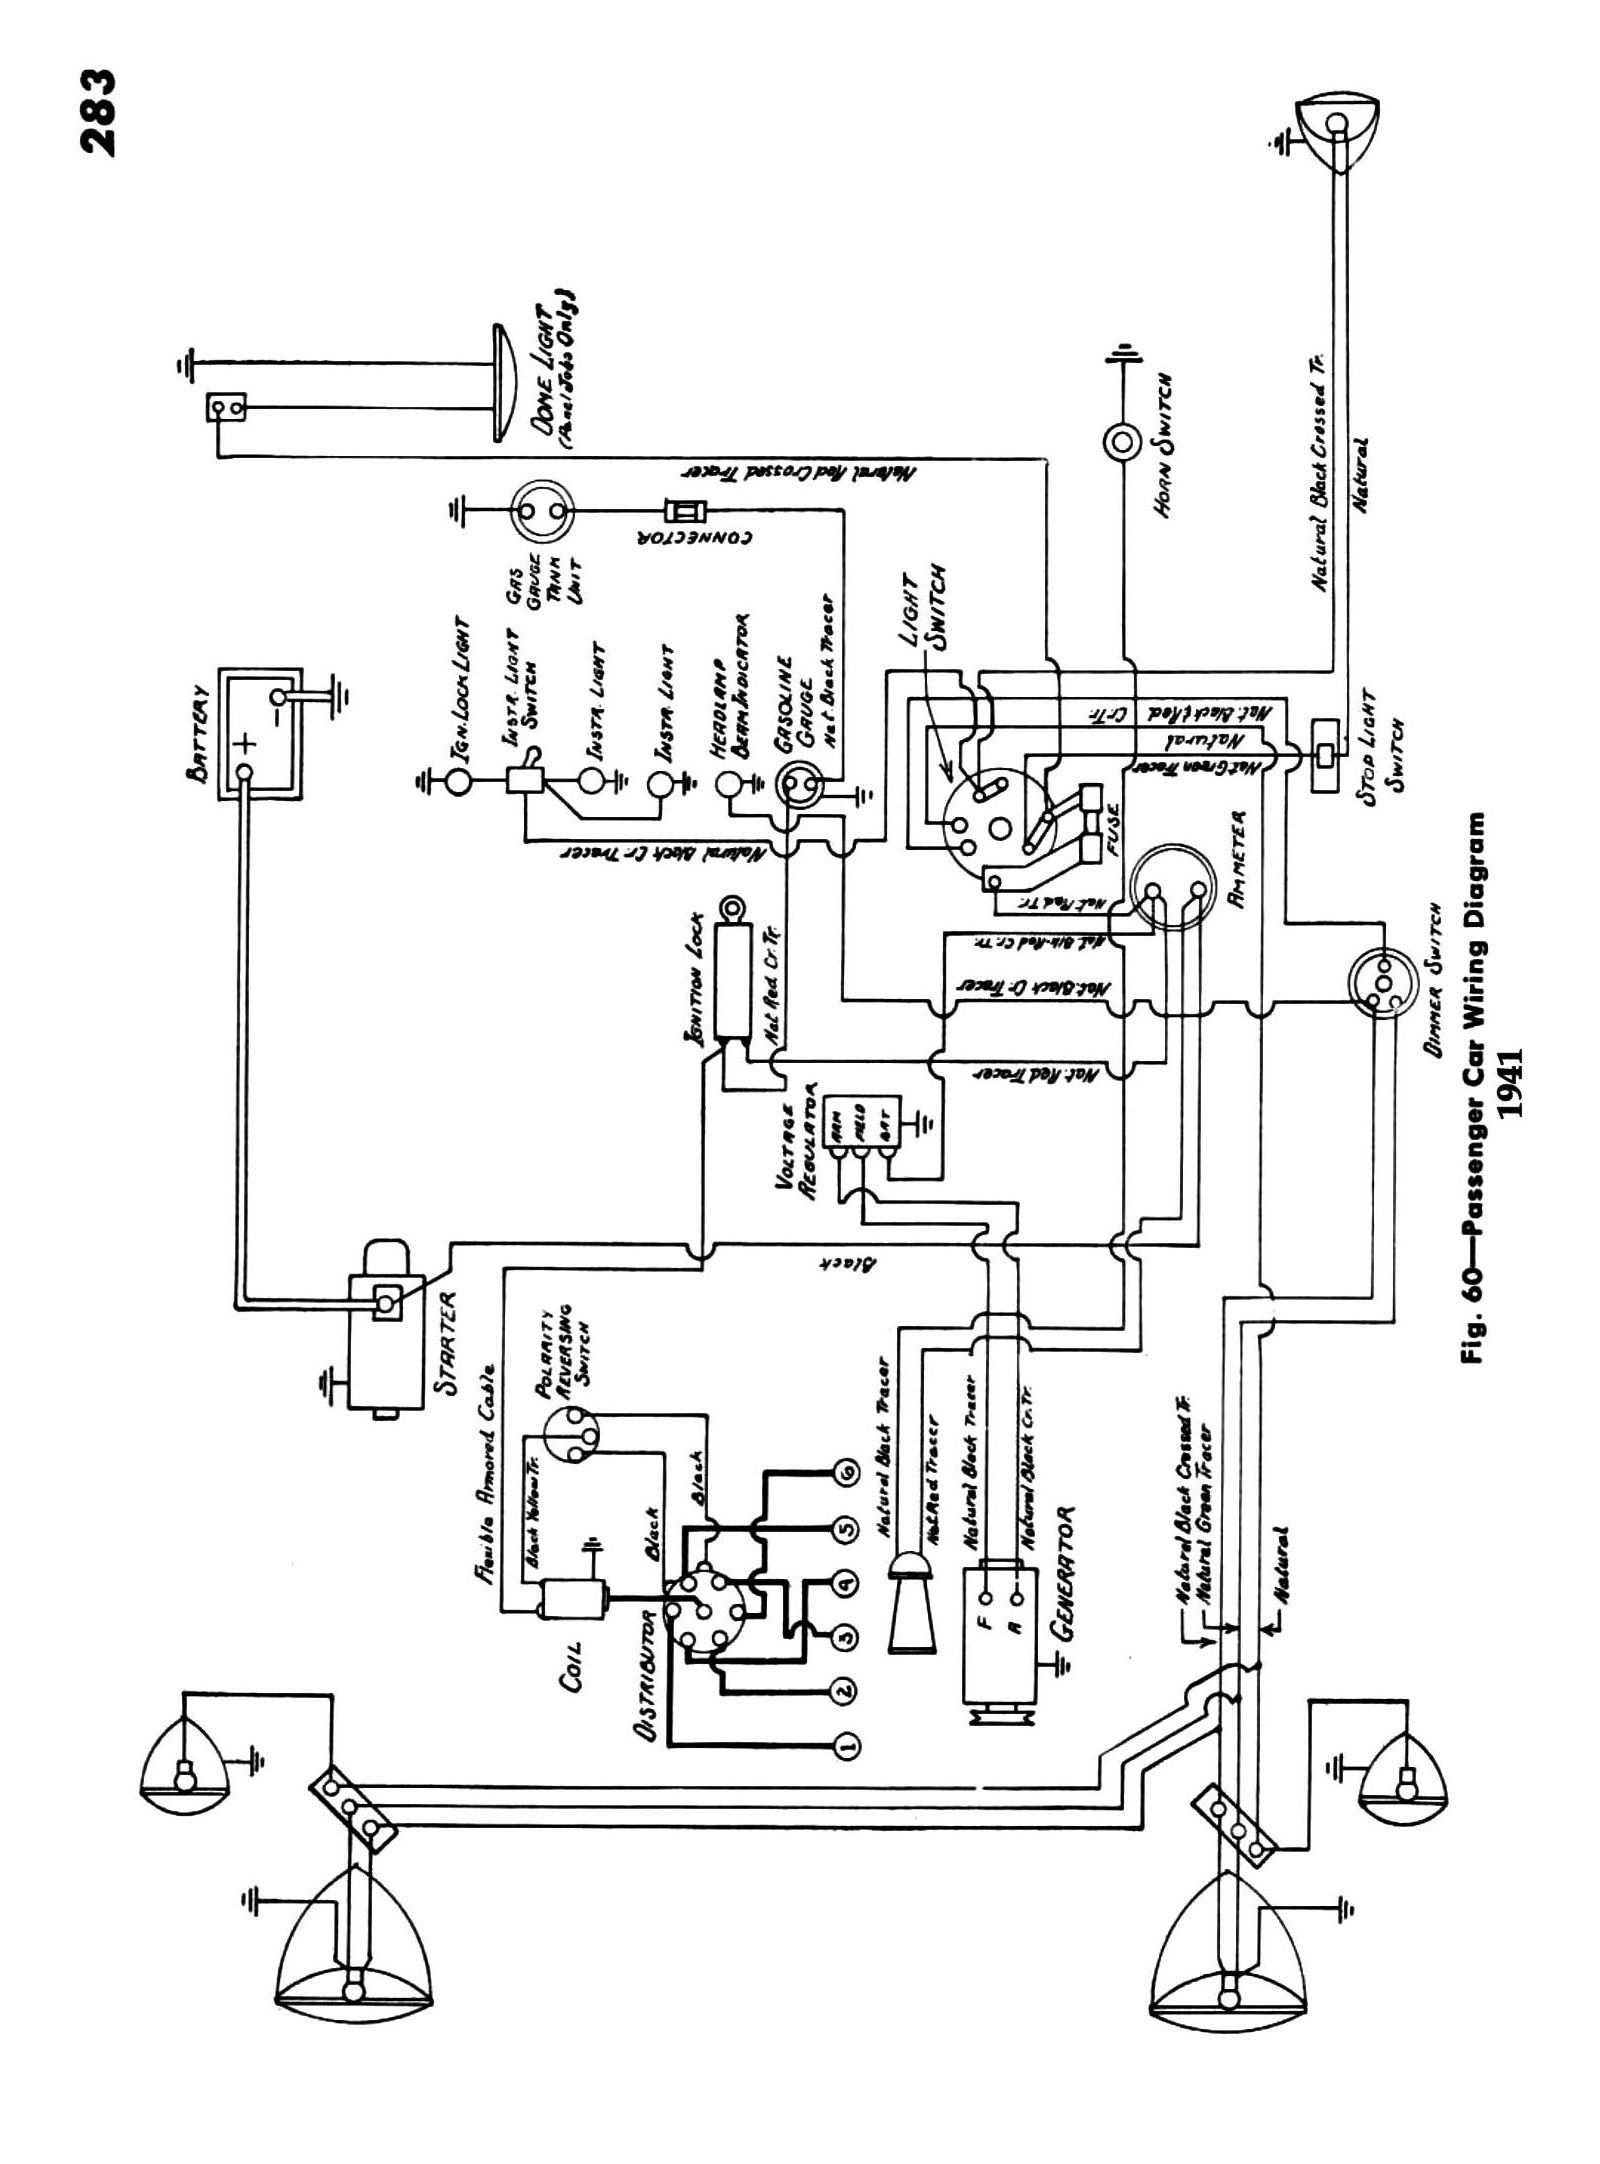 hight resolution of 1959 gmc truck headlight switch wiring wiring diagram article review1947 chevy headlight switch wiring diagram wiring